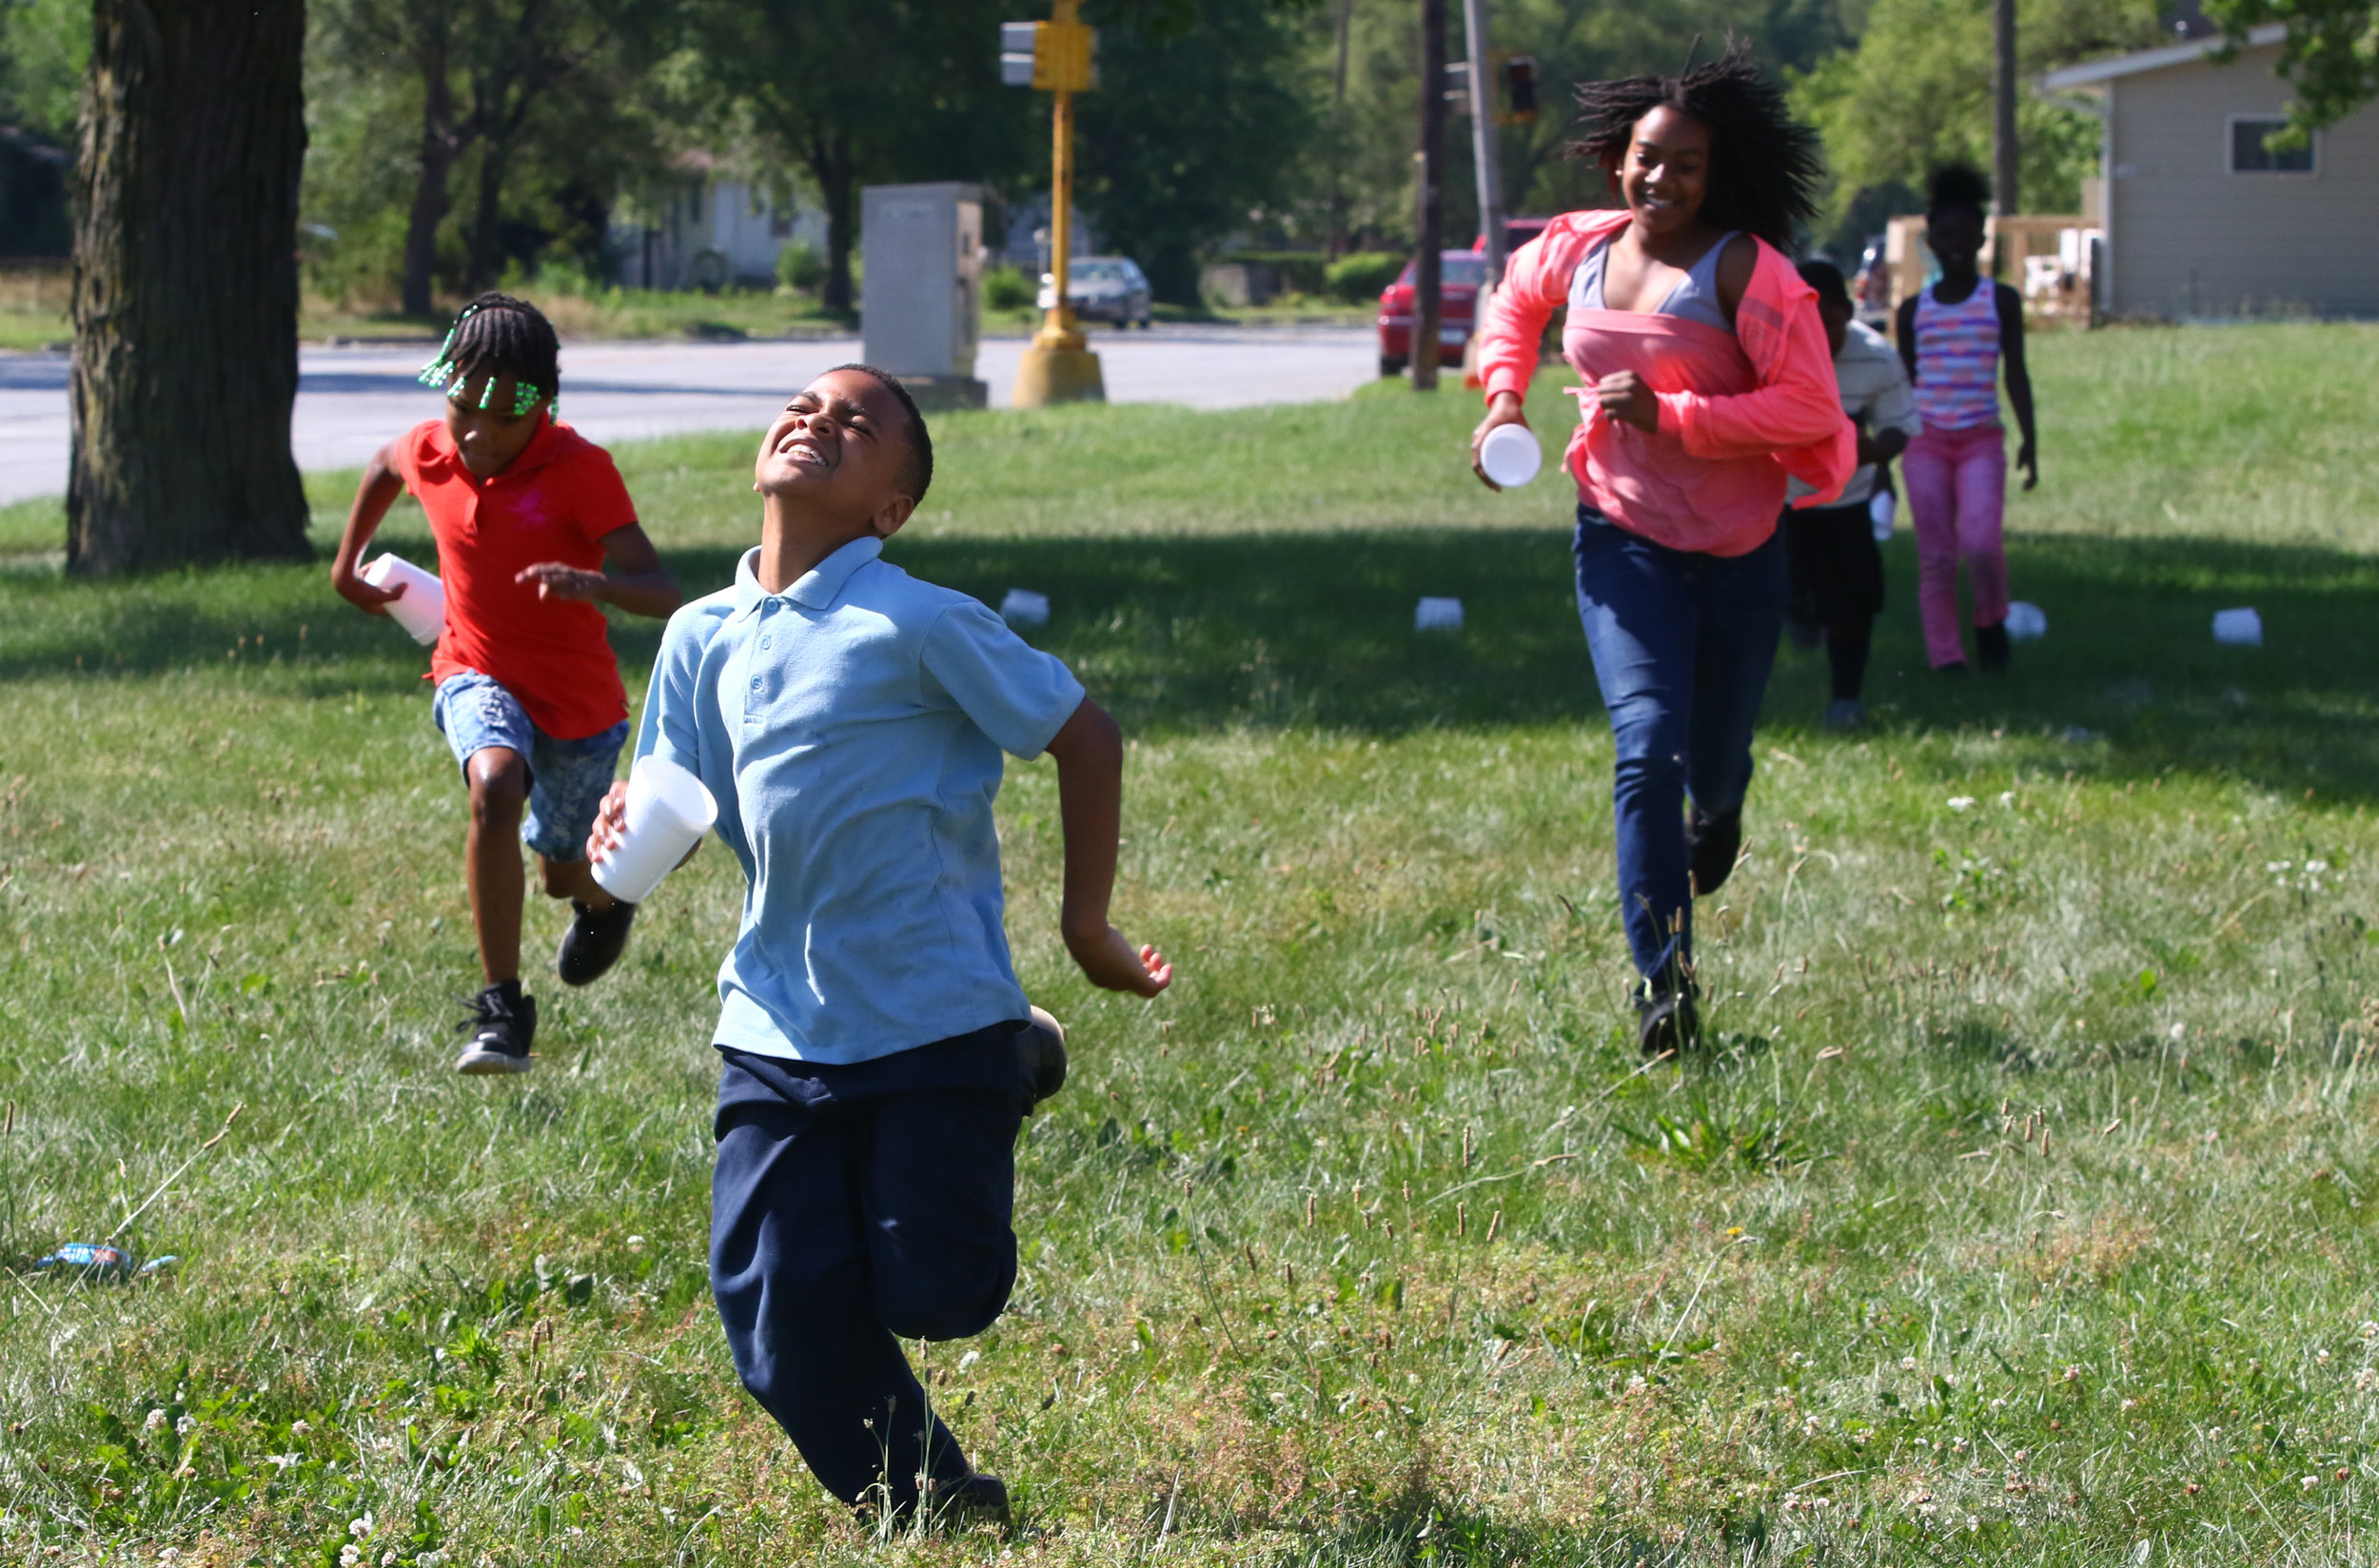 From left, Karma Dolton, a fifth grader at Daniel Hale Williams Elementary School in Gary, Davon Davis, a fifth grader at Beveridge Elementary School in Gary and Latasha Stewart, a fifth grader at Glen Park Academy for Excellence in Learning in Gary, participate in an activity in the Summer Enrichment Program being hosted at Daniel Hale Williams Elementary School.